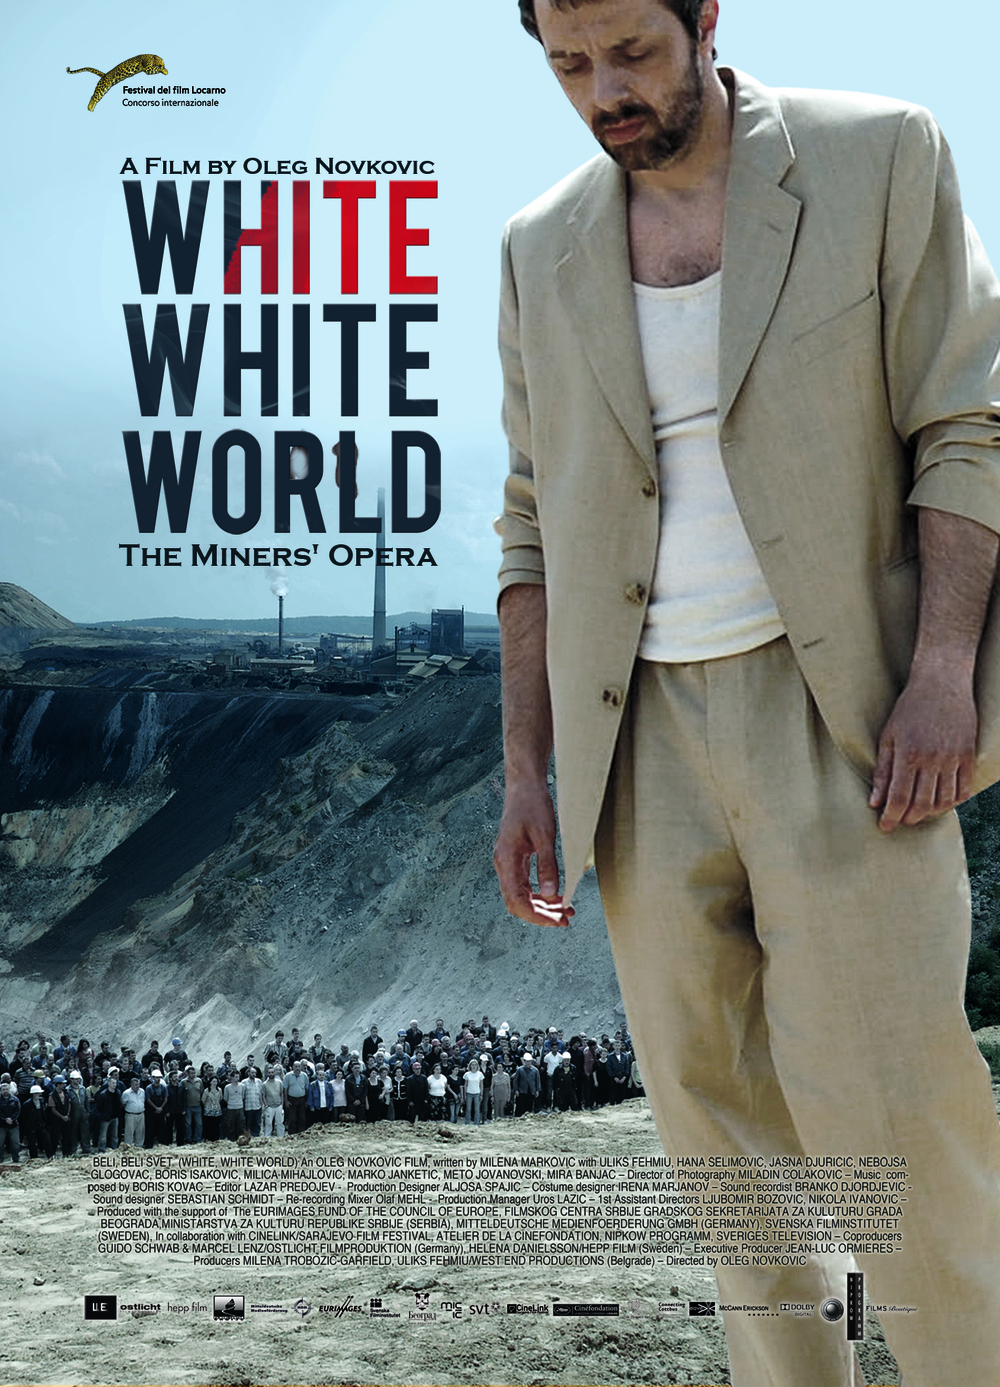 2012_White_White_World_ostlicht_filmproduktion.jpg